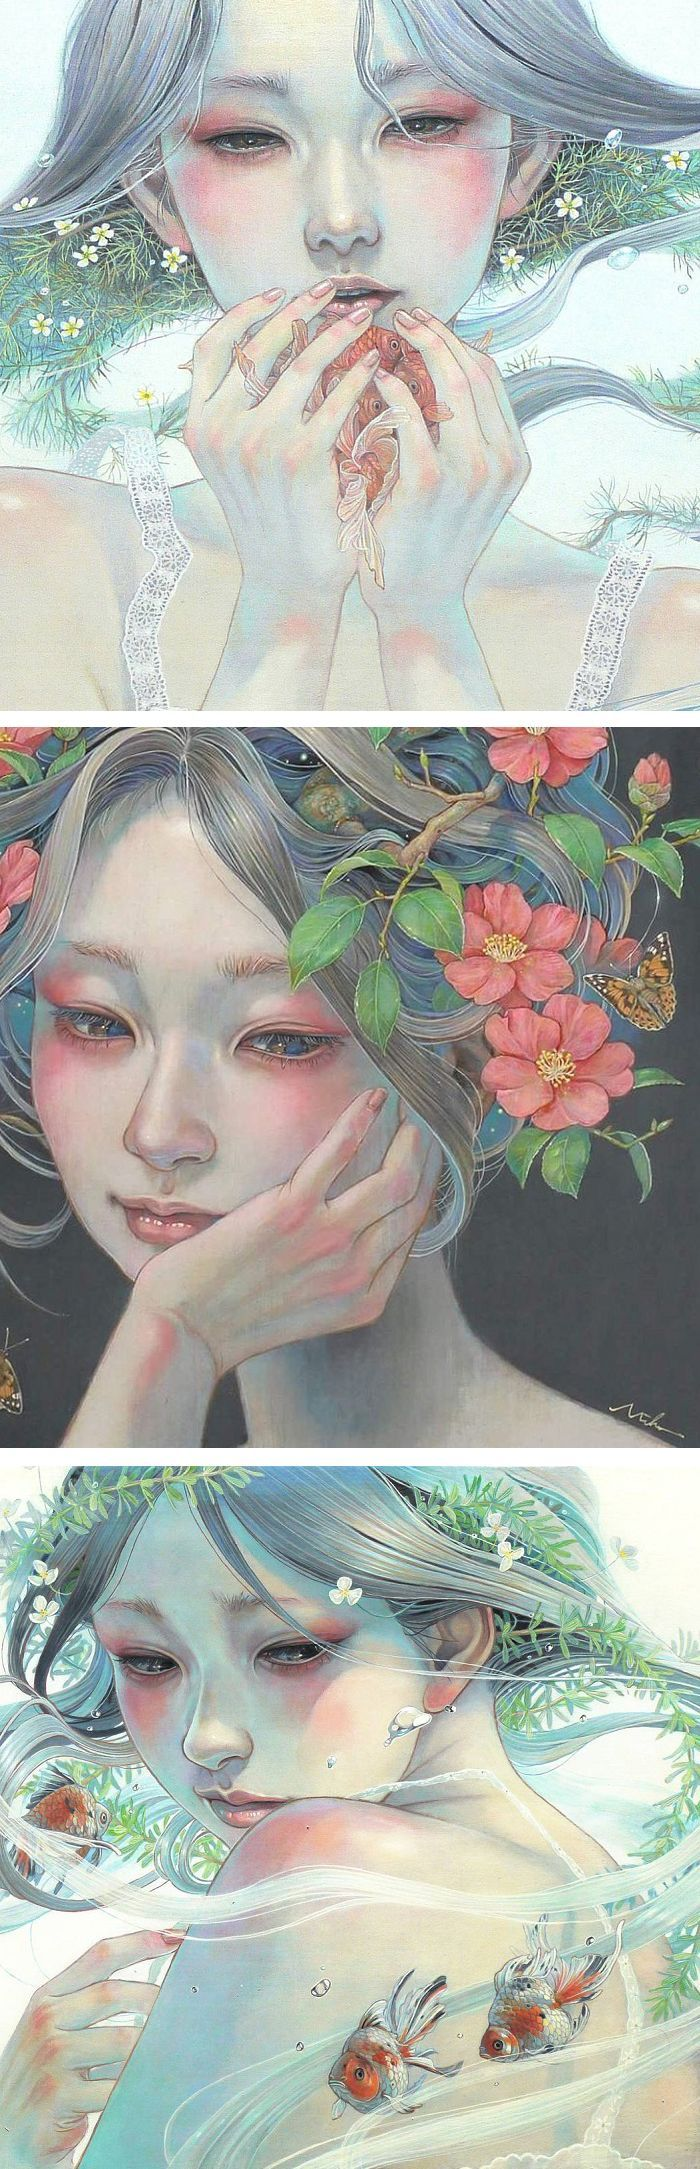 Ethereal paintings by Miho Hirano // oil painting // fantasy art